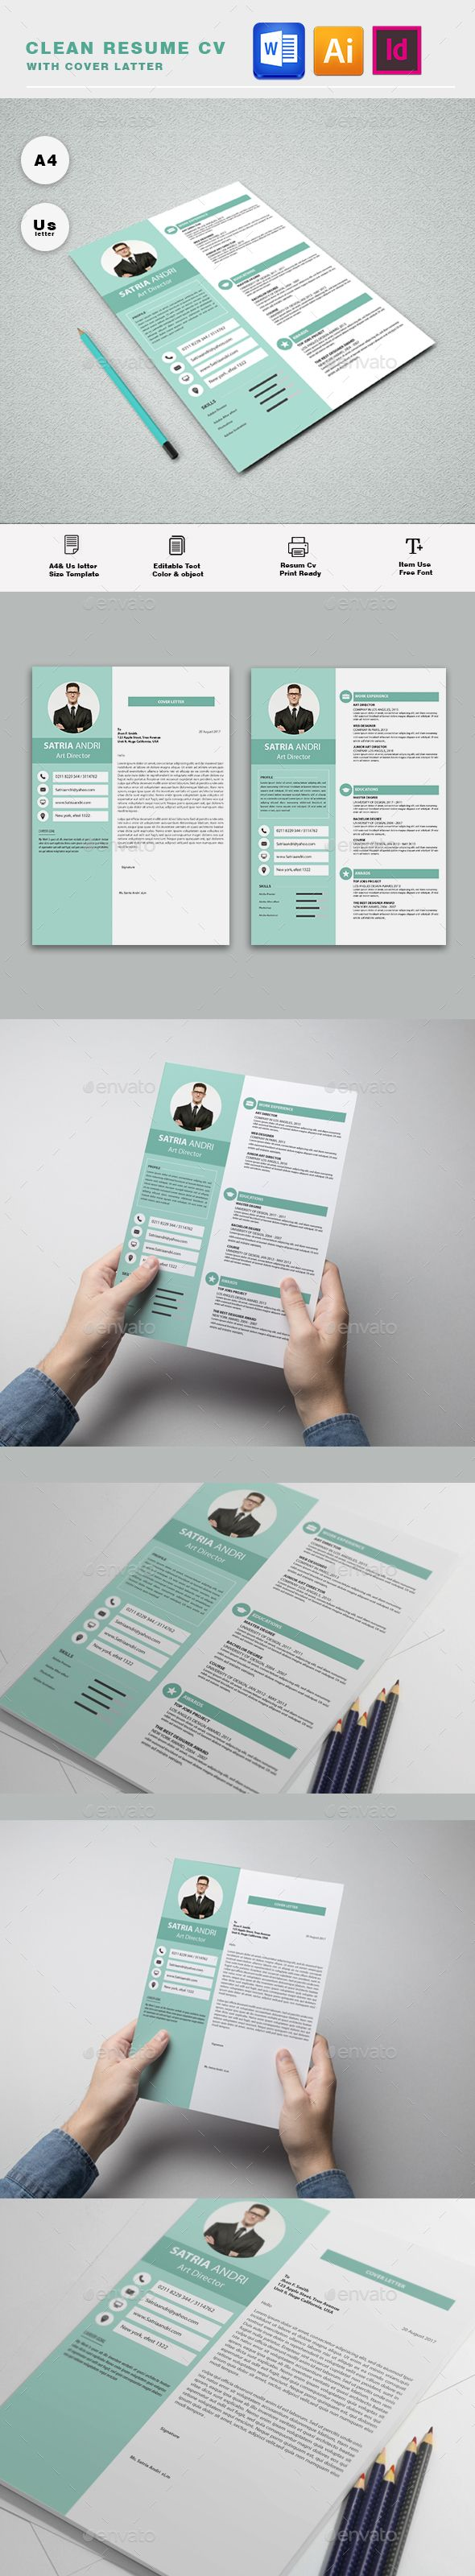 Resume Template InDesign INDD, AI Illustrator, MS Word - A4 & US Letter Size